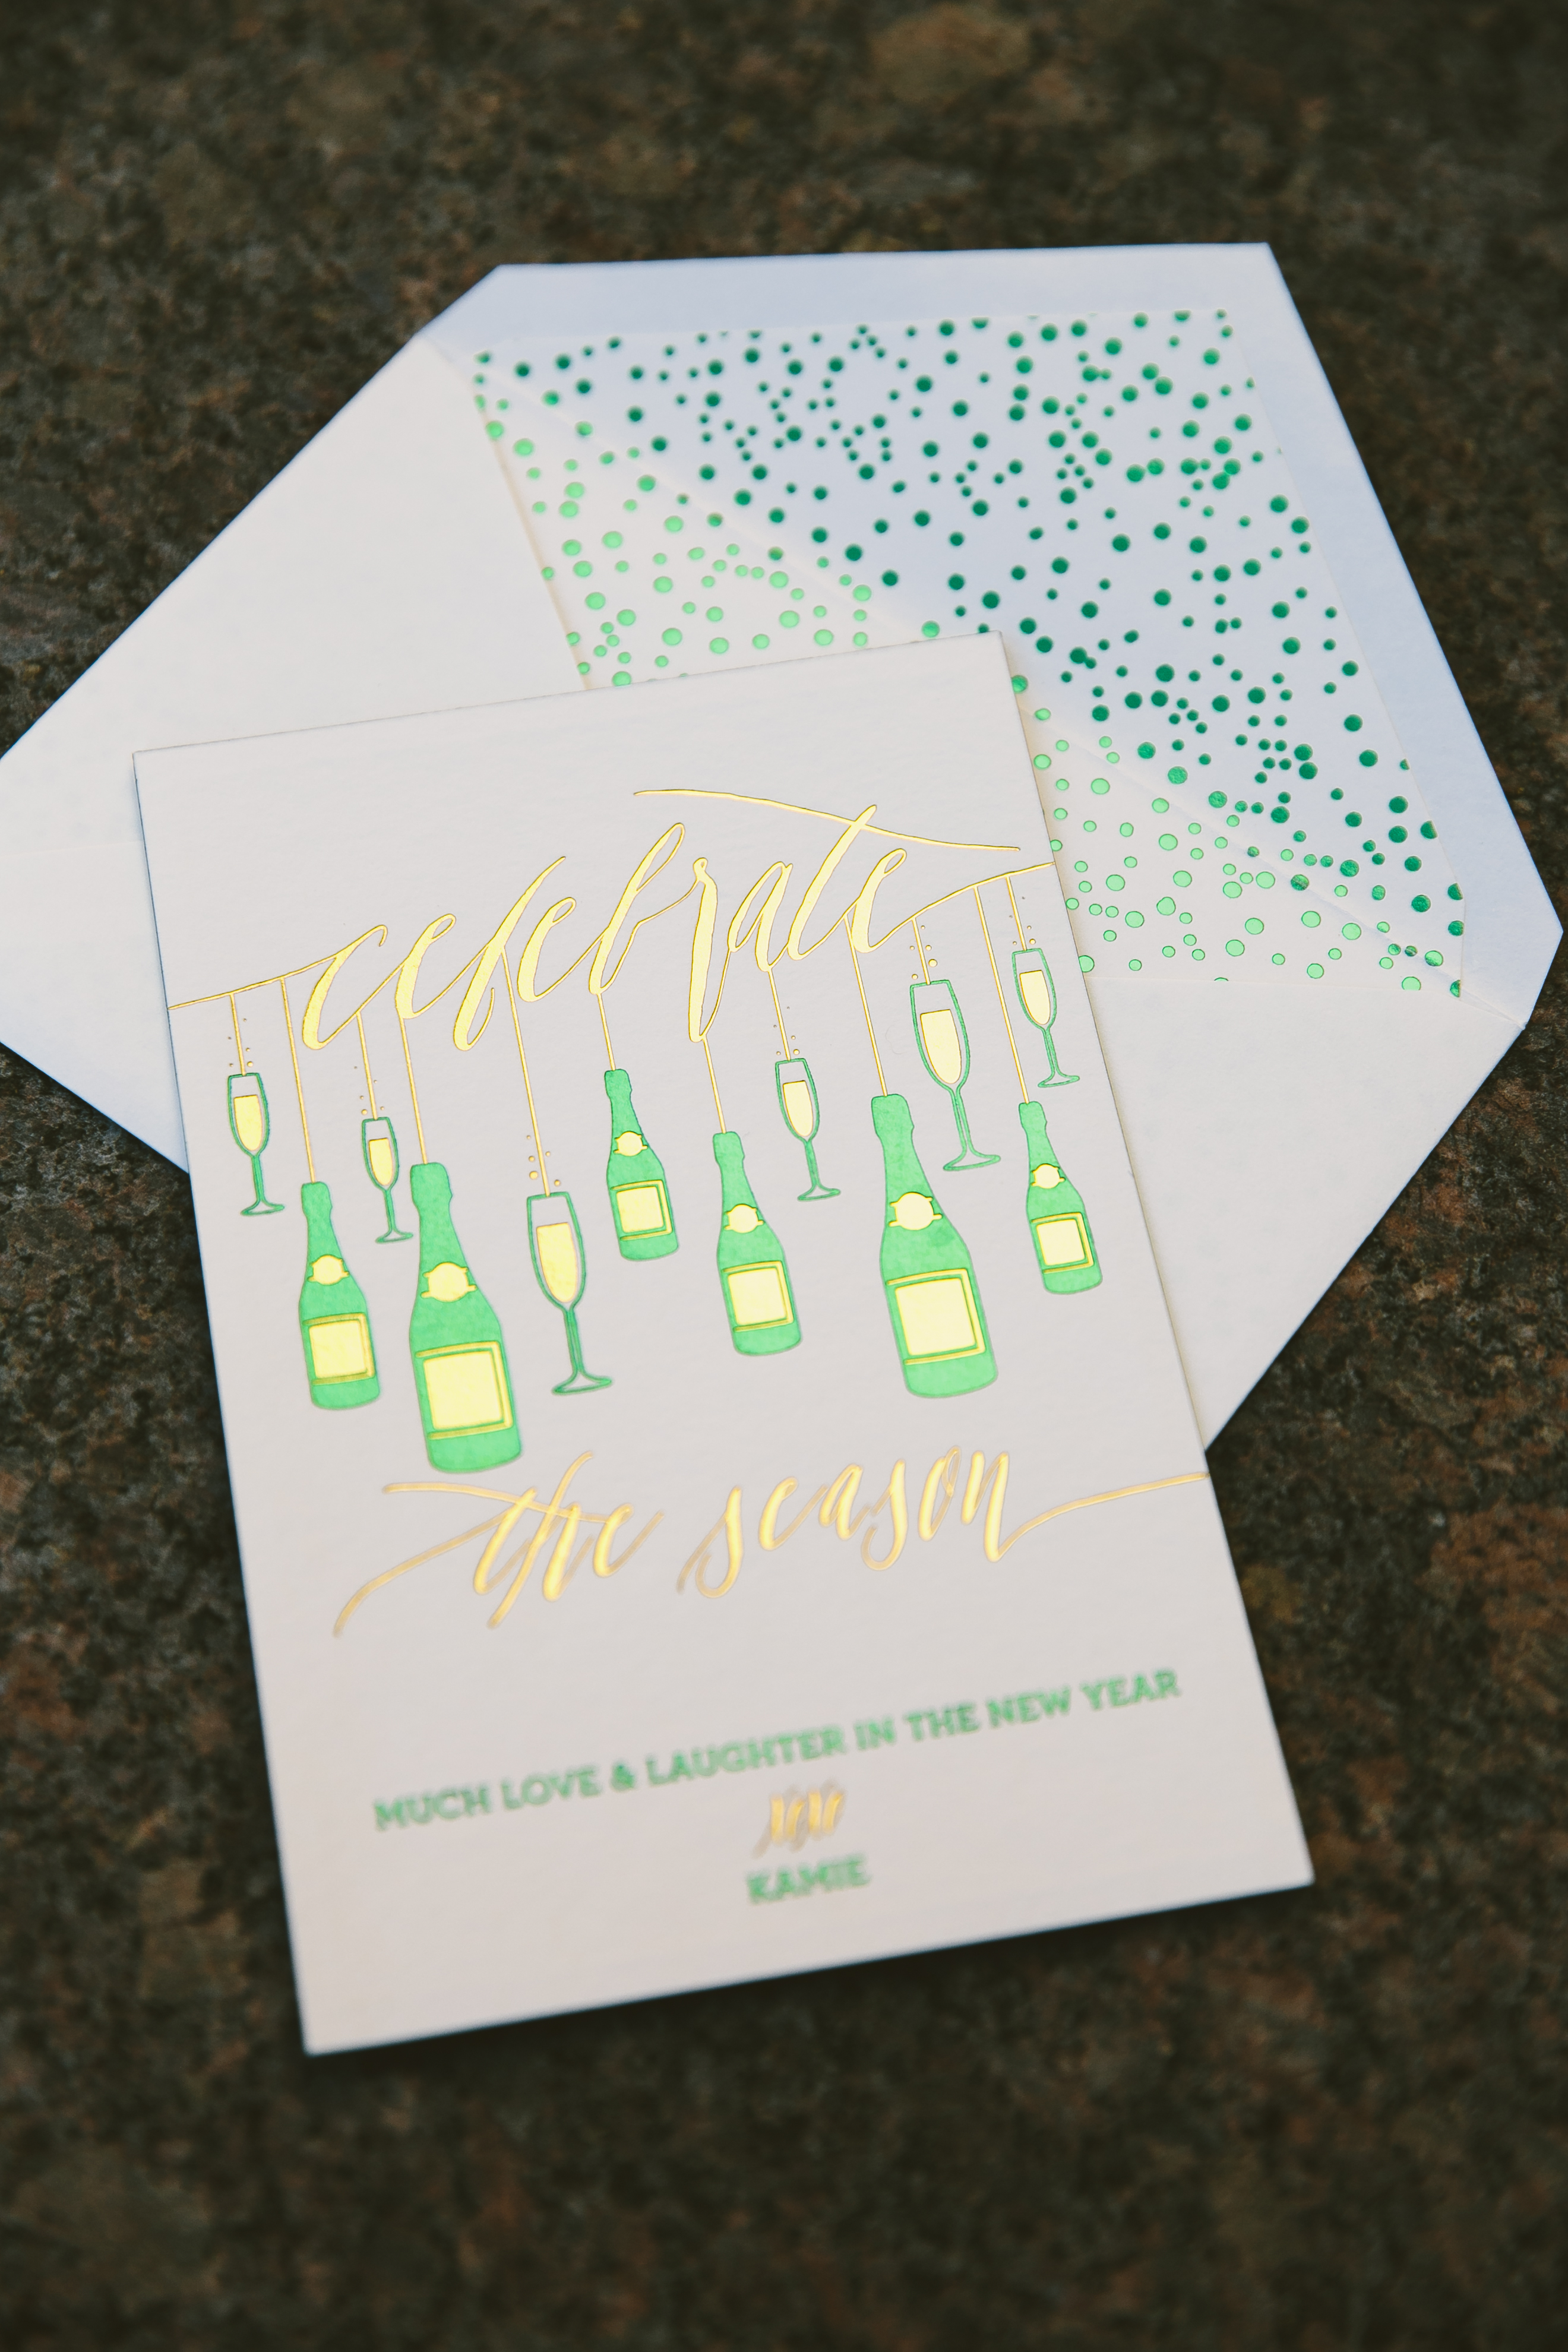 Foil stamped New Year's cards from Smock